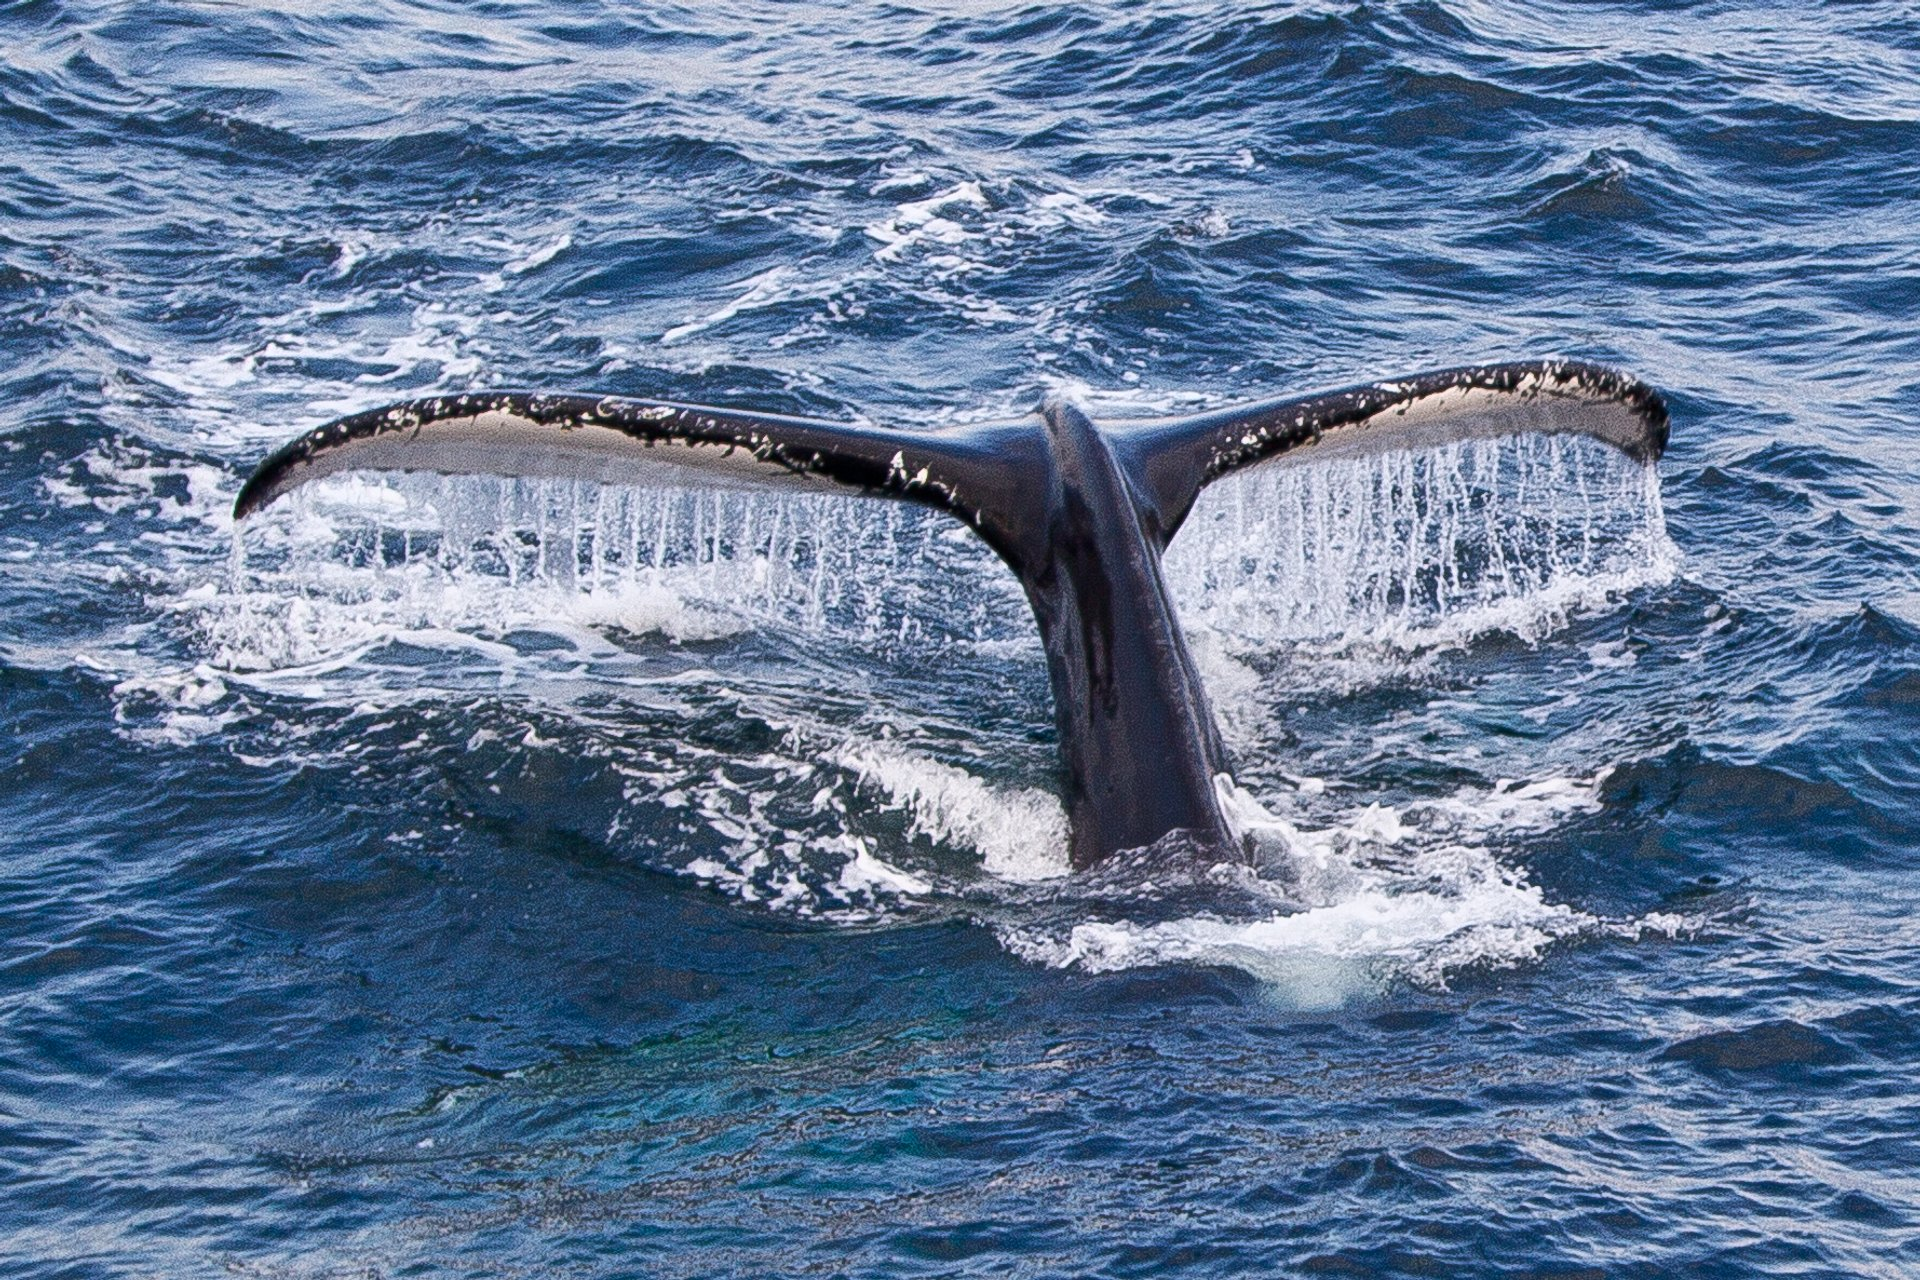 Whale Watching in Massachusetts - Best Season 2020